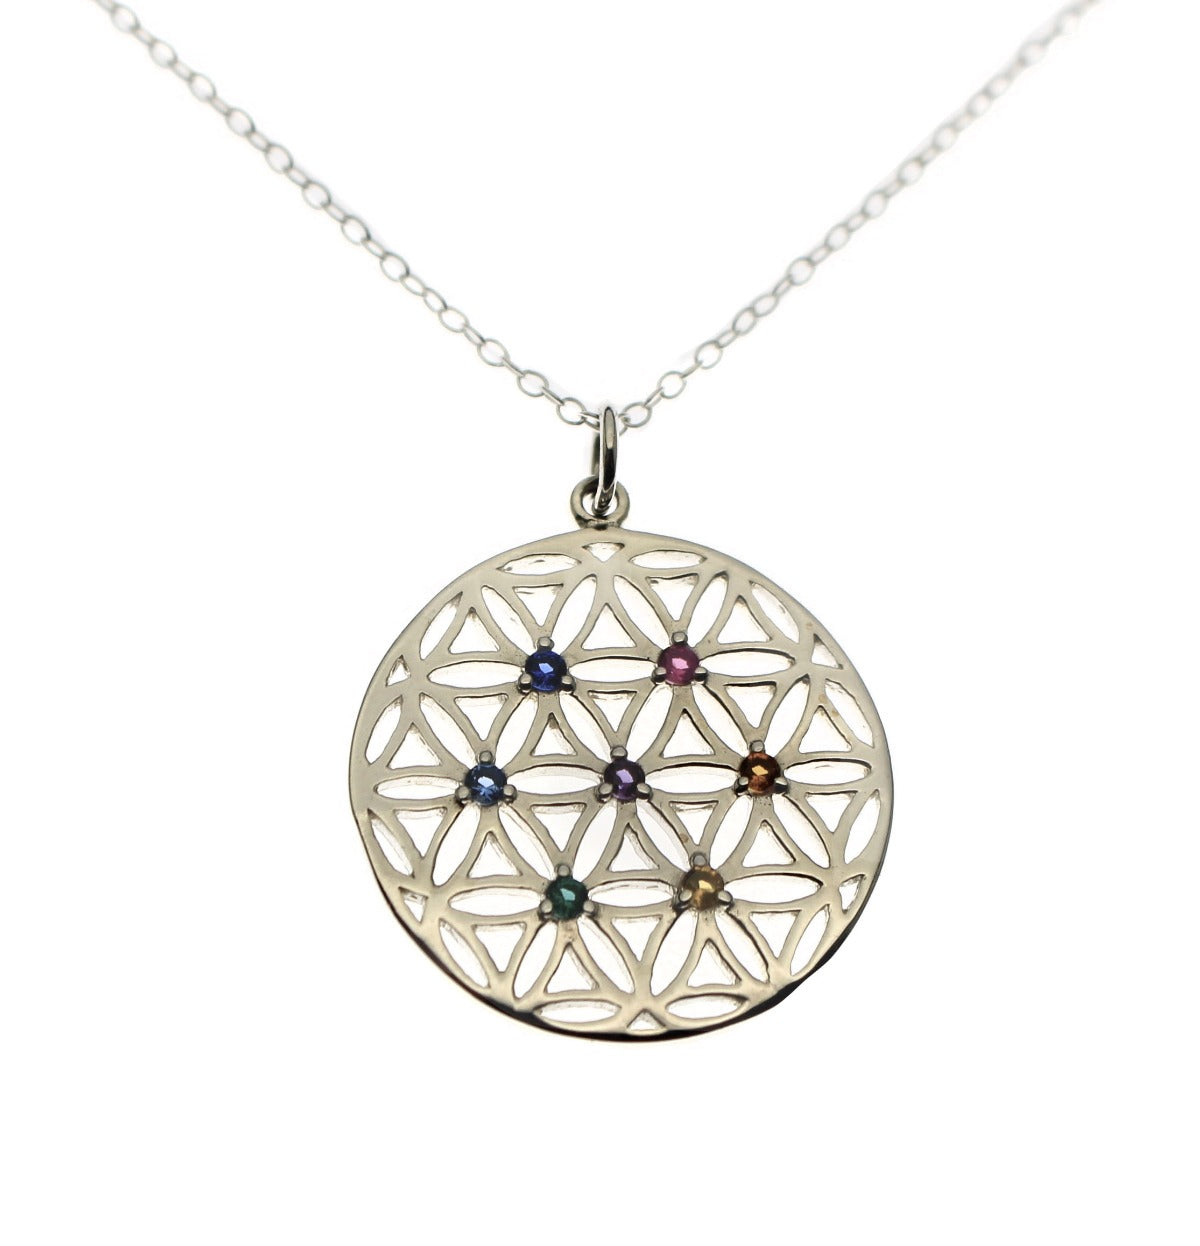 Chakra Crystals Flower of Life Necklace - Love It Personalized